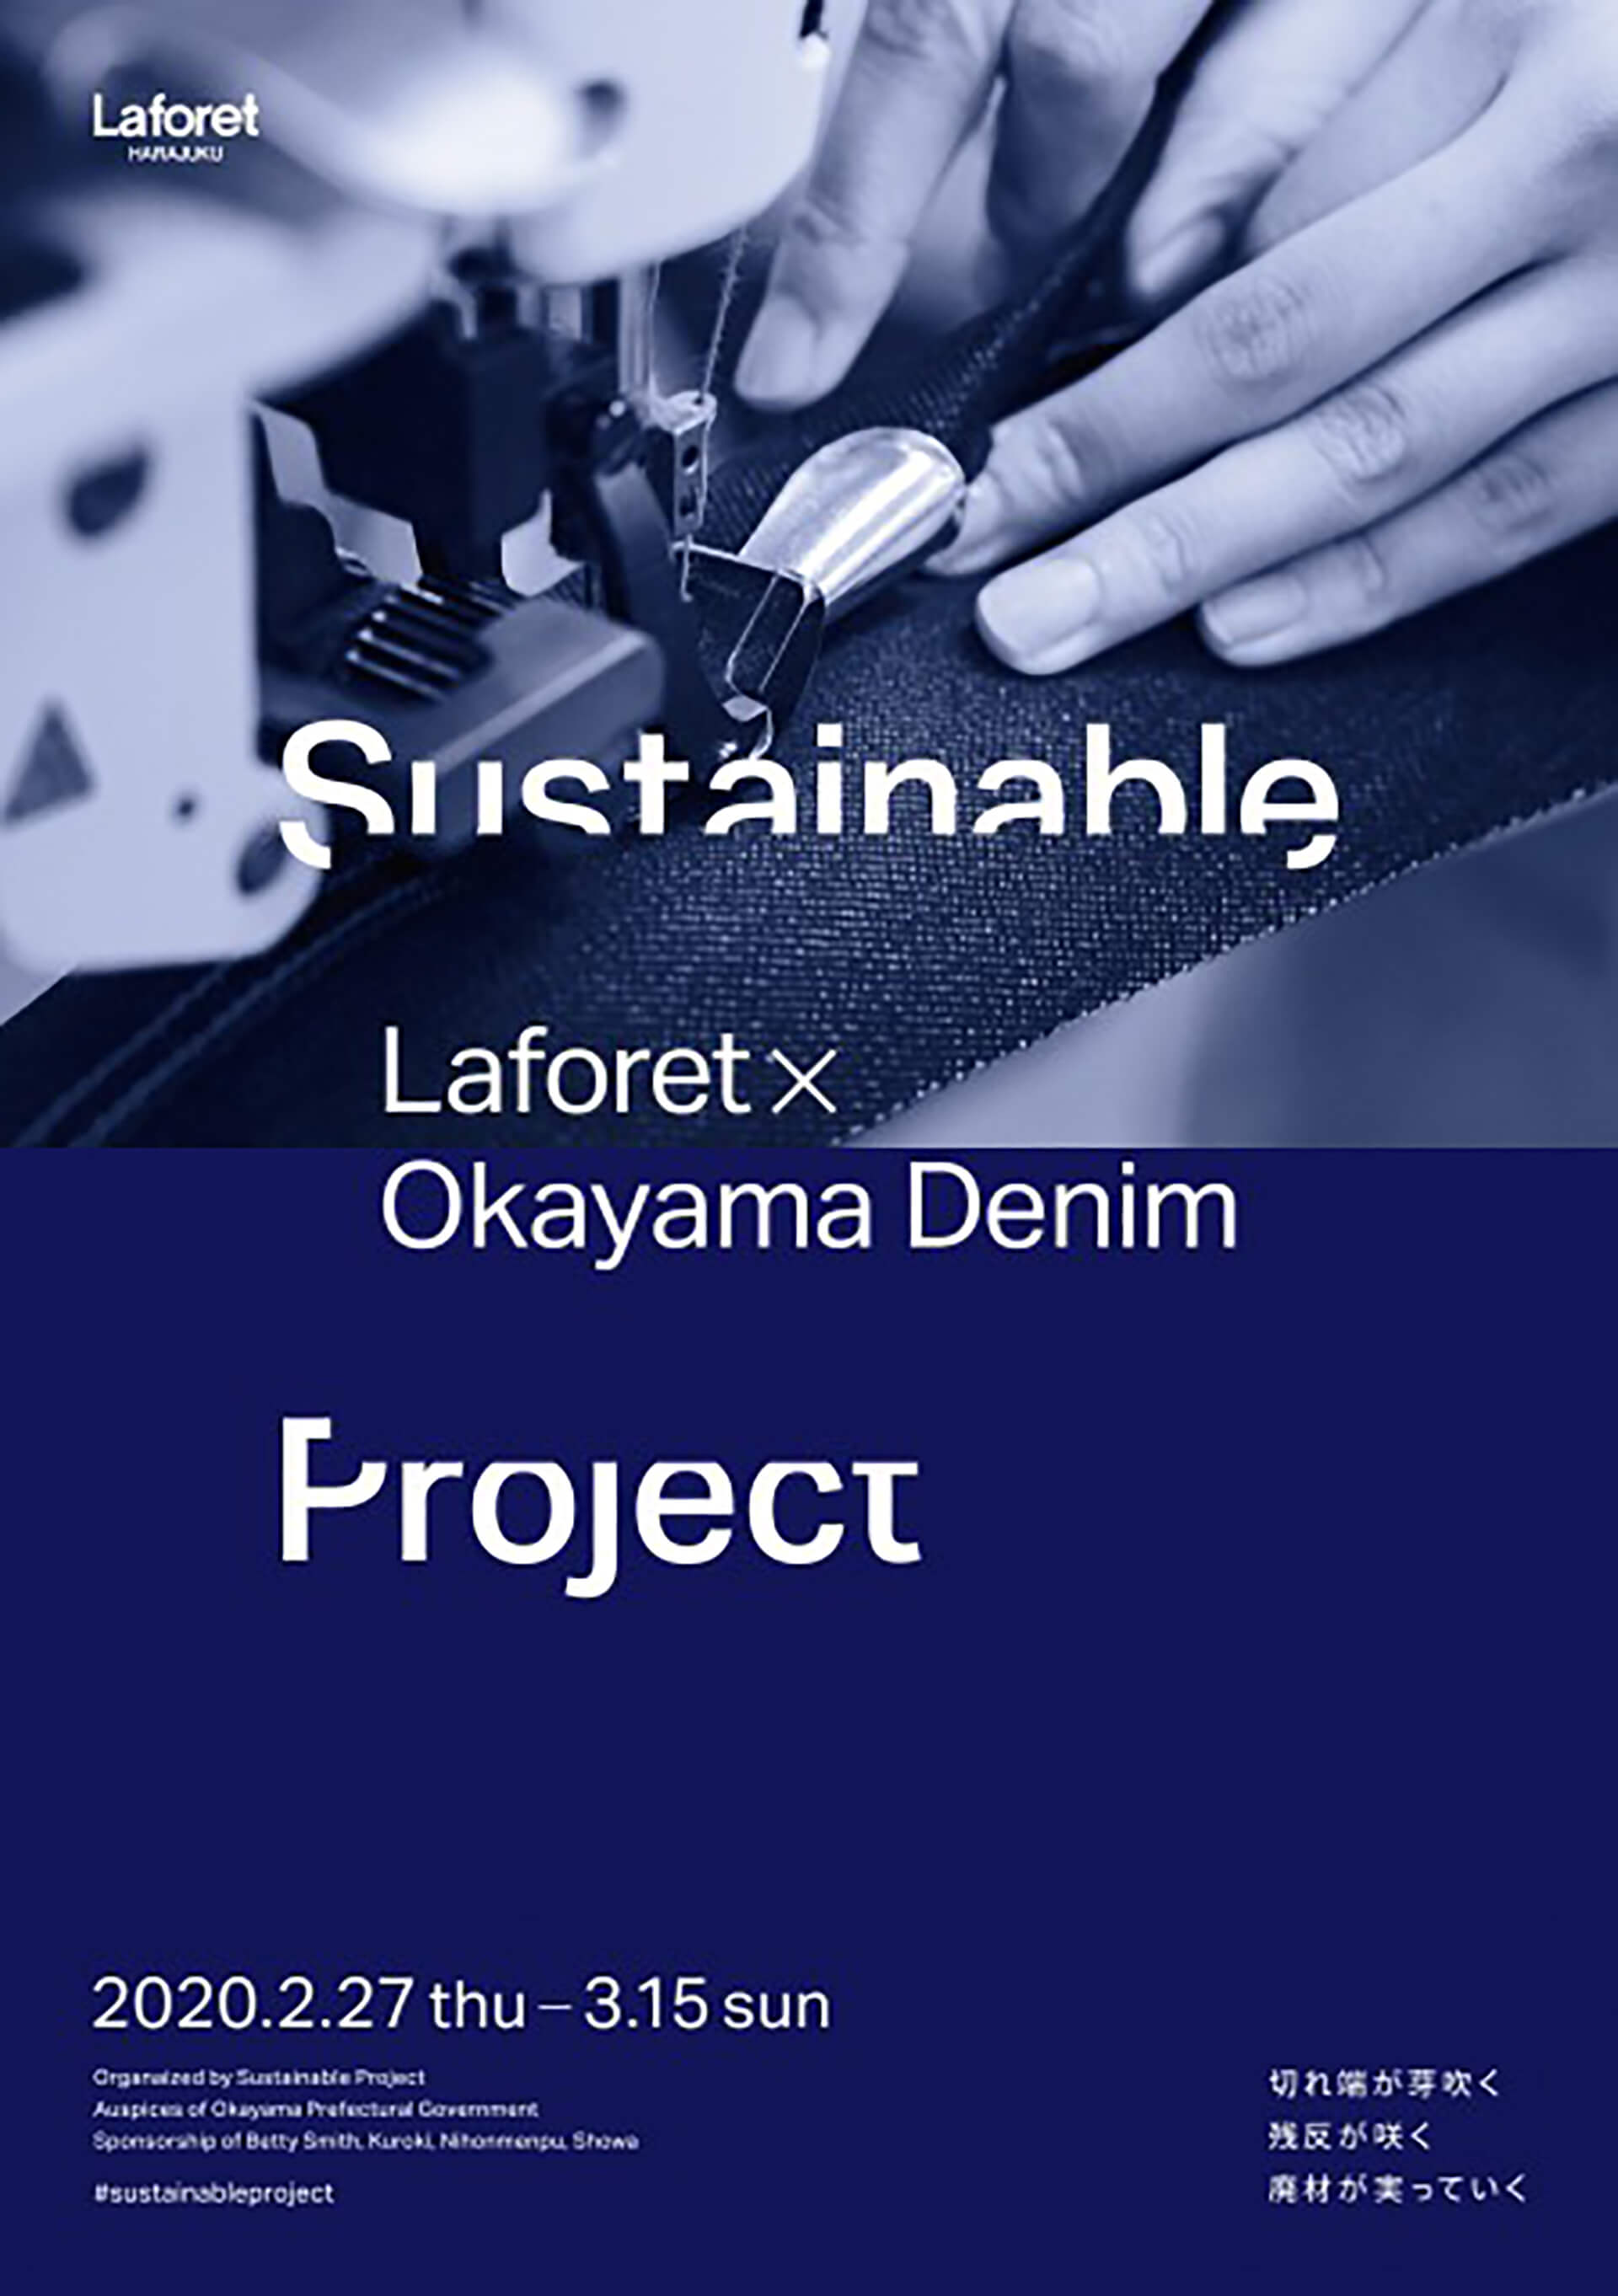 Sustainable Project Laforet×Okayama Denimポスター